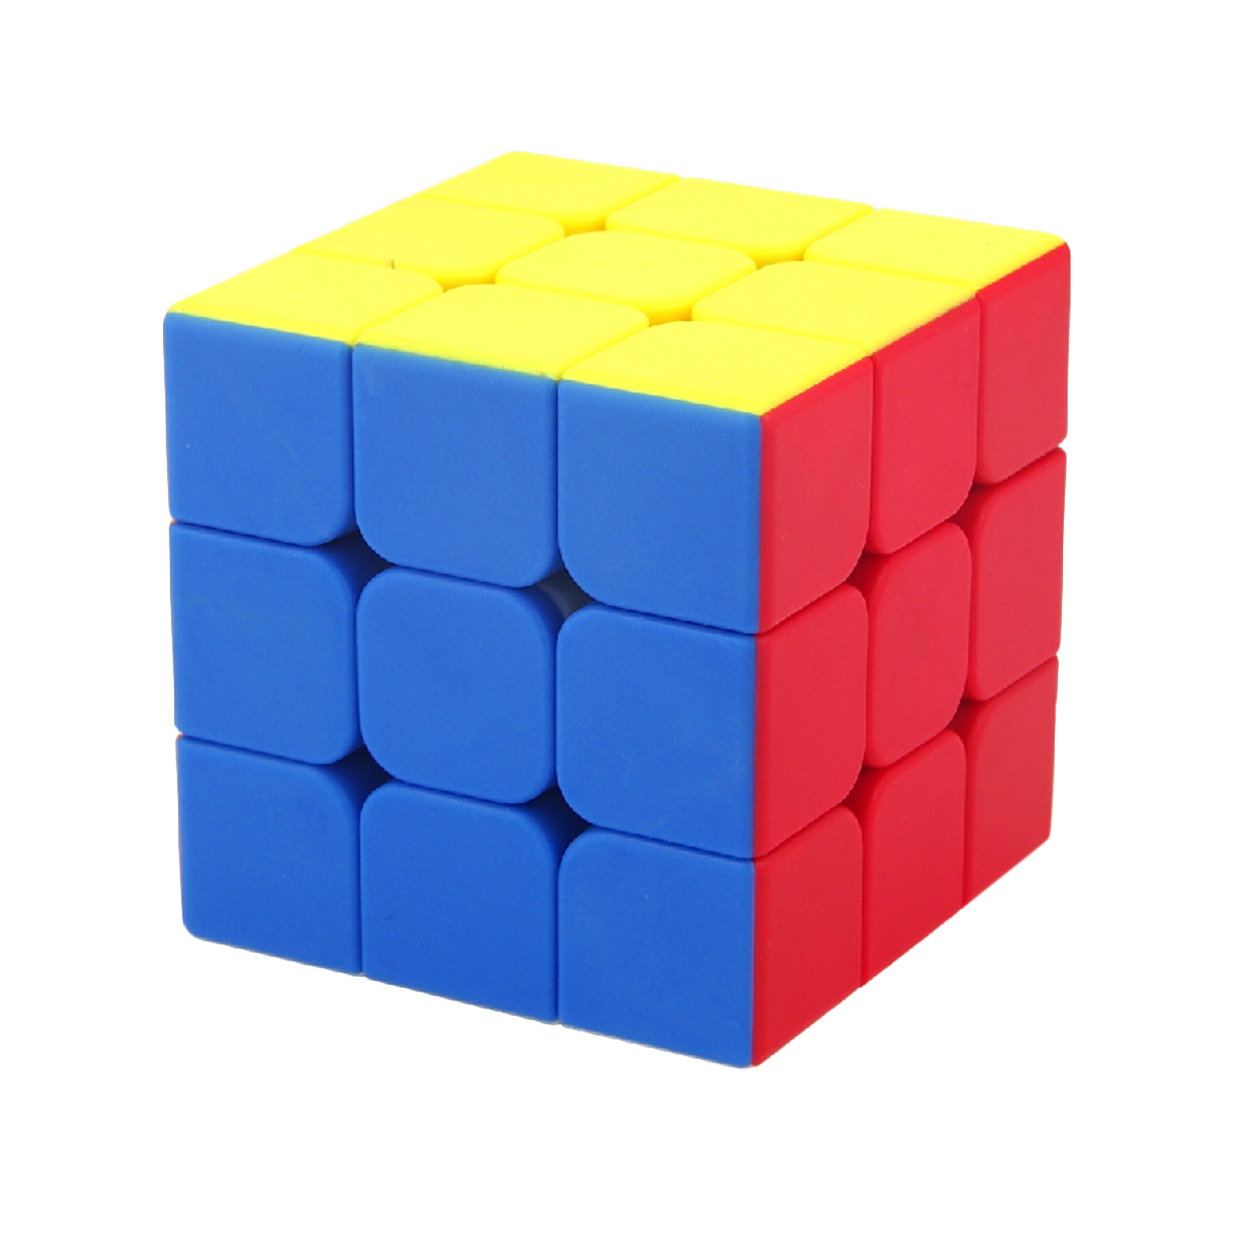 MF3s 3x3x3 Frosted and Colorful Stickerless Magic Cube Puzzle - 6-ColorMF3s 3x3x3 Frosted and Colorful Stickerless Magic Cube Puzzle - 6-Color